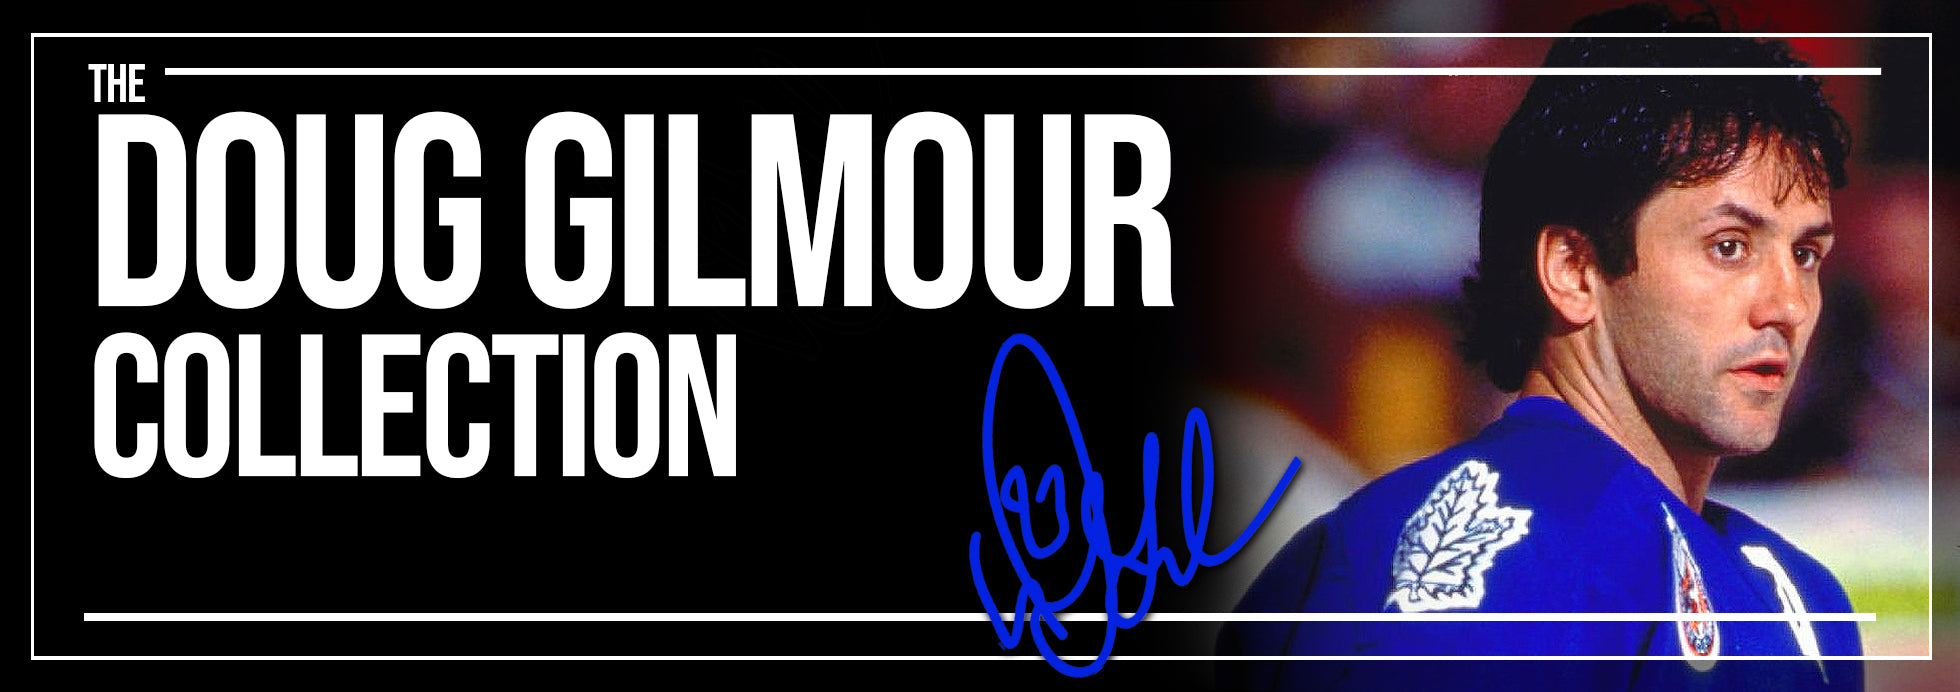 Doug Gilmour Collection Banner